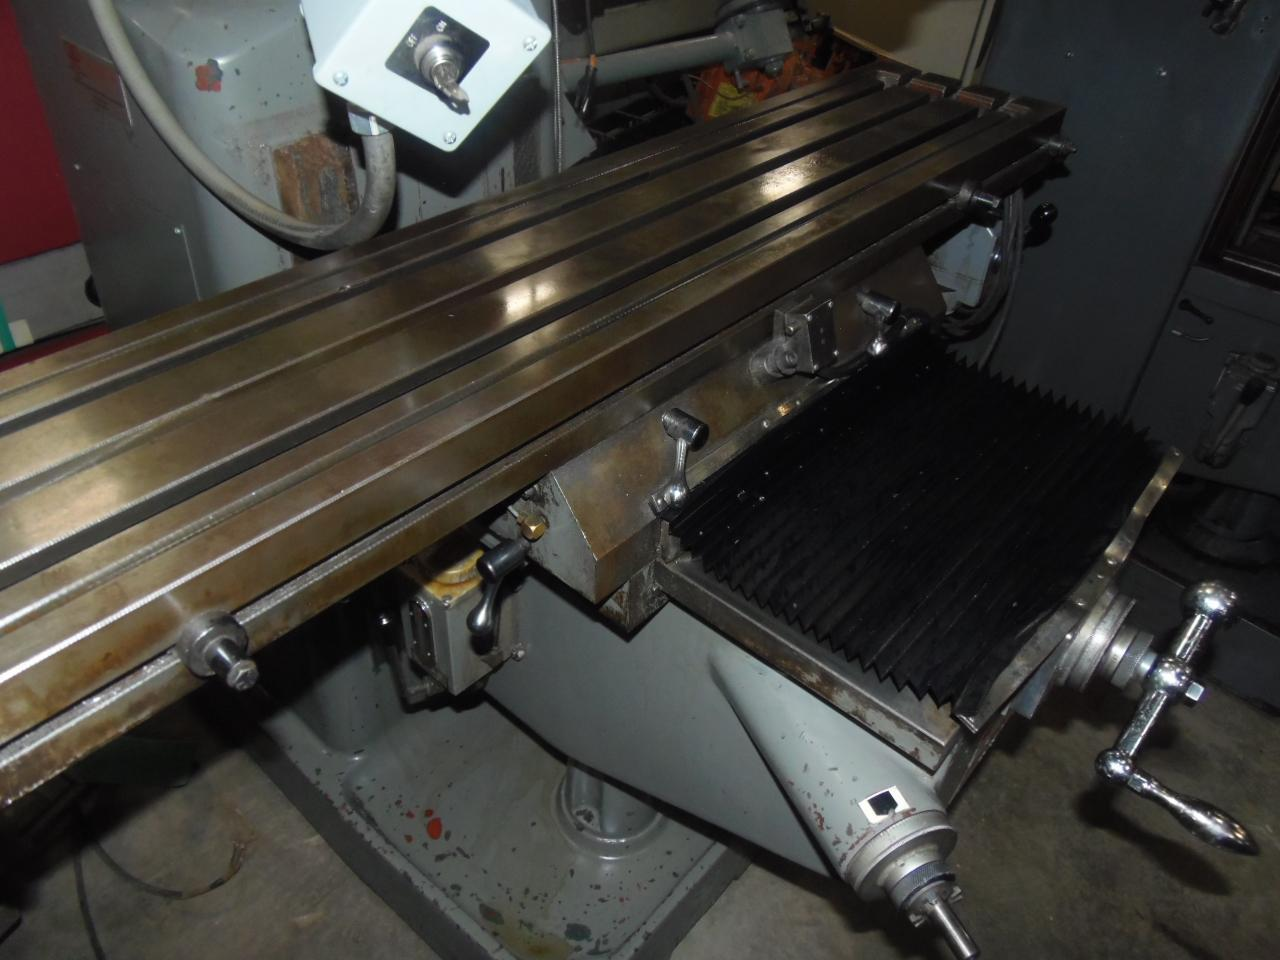 NO. 3KVHII MILLPORT MILL WITH 10 x 50 TABLE, VARY SPEED, READOUTS AND POWER FEED